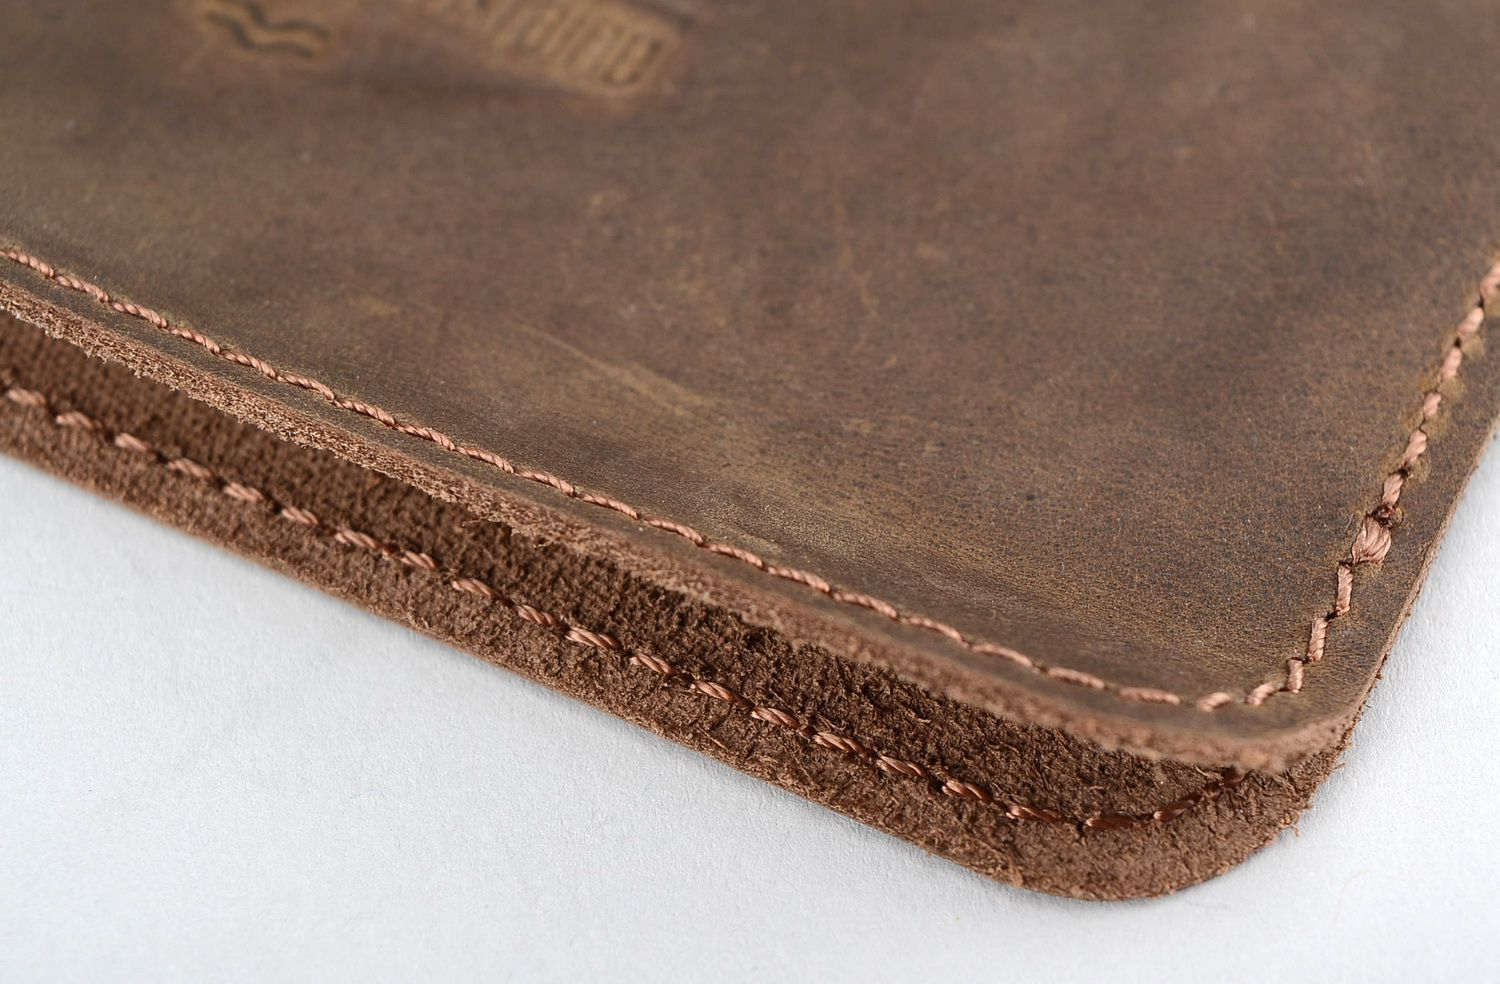 Cases for smartphones and tablets Sleeve for iPhone 4S/5S made of natural leather - MADEheart.com